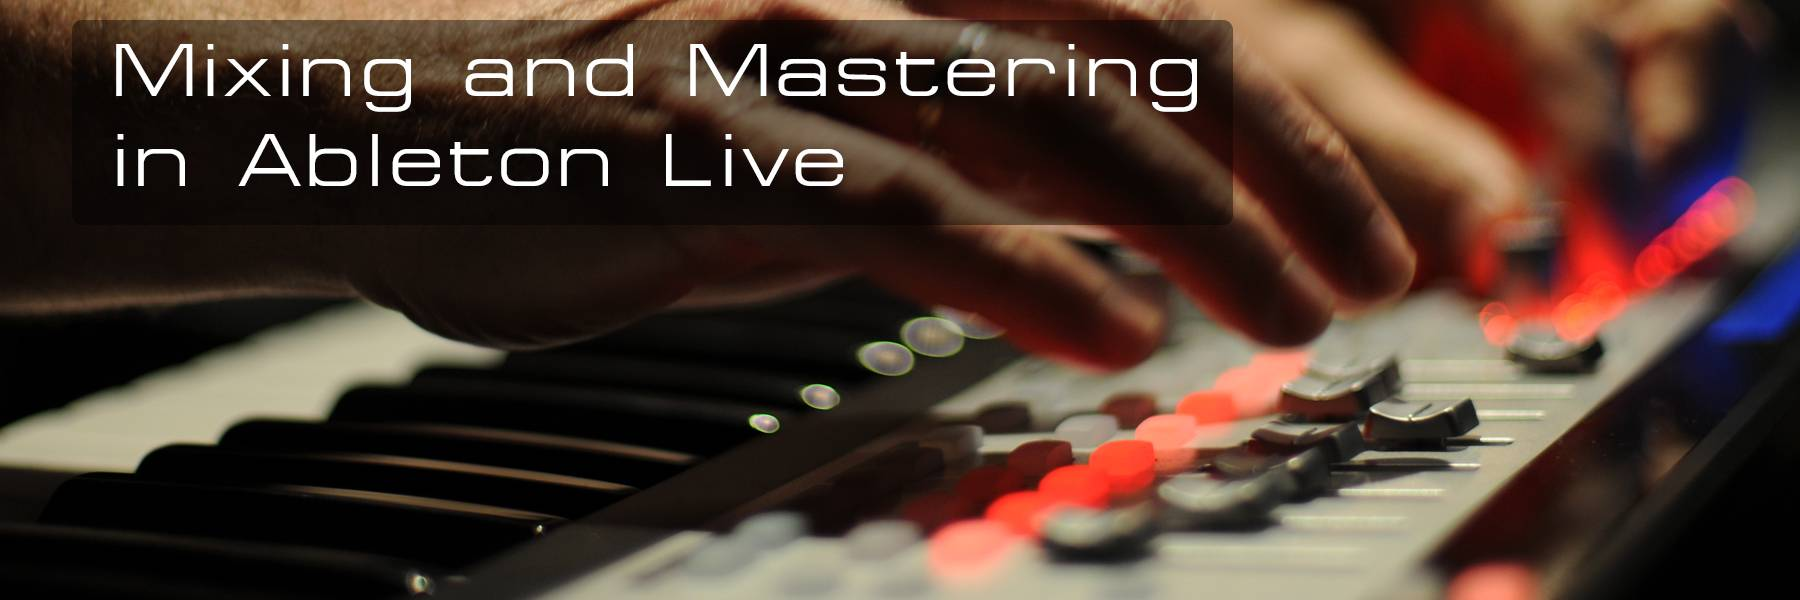 Mixing, Mastering and Effects in Ableton Live